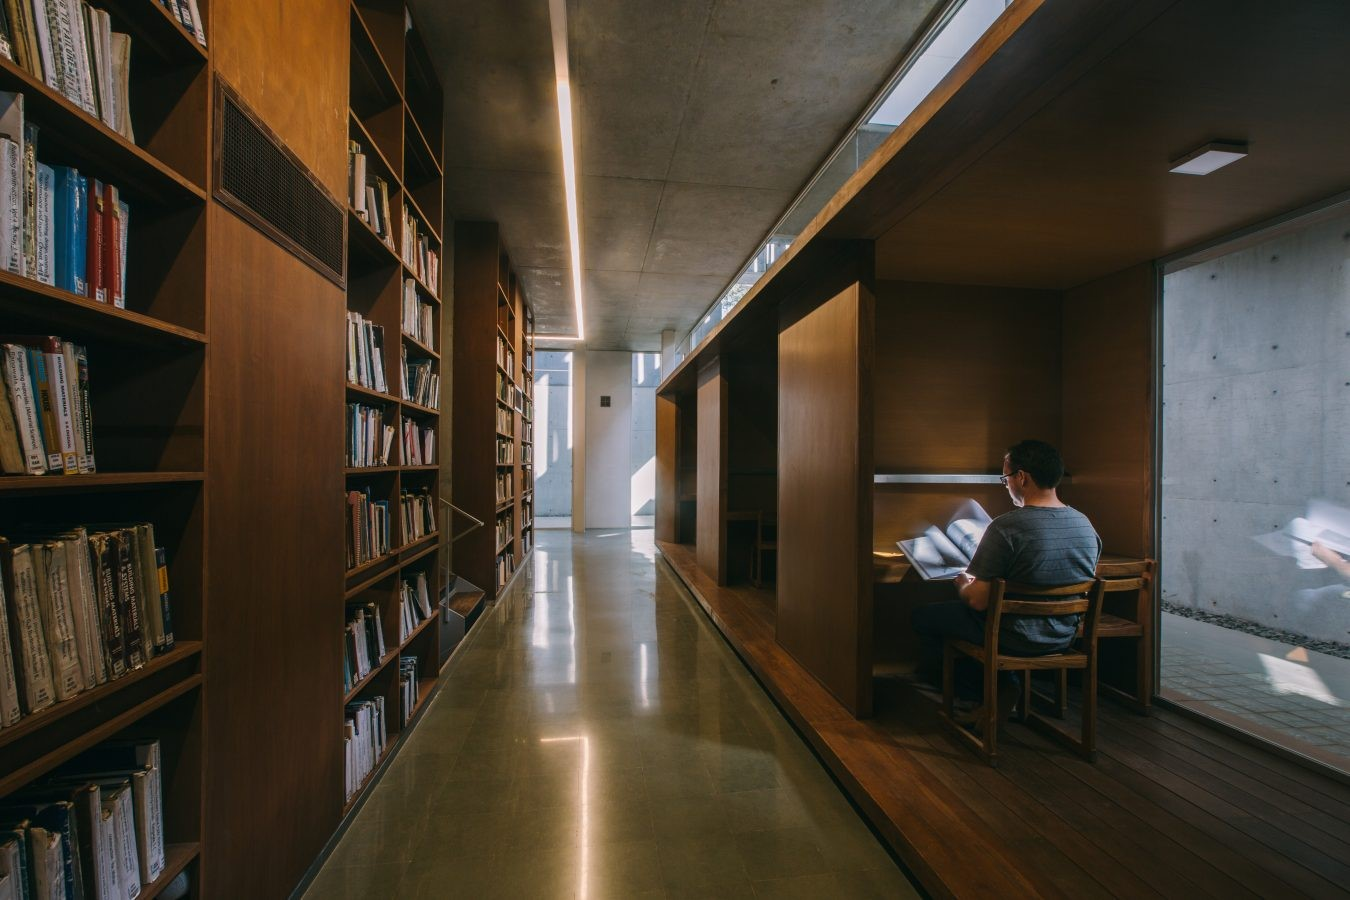 The CEPT University Library, Ahmedabad by Rahul Mehrotra: Spaces within the spaces - Sheet5